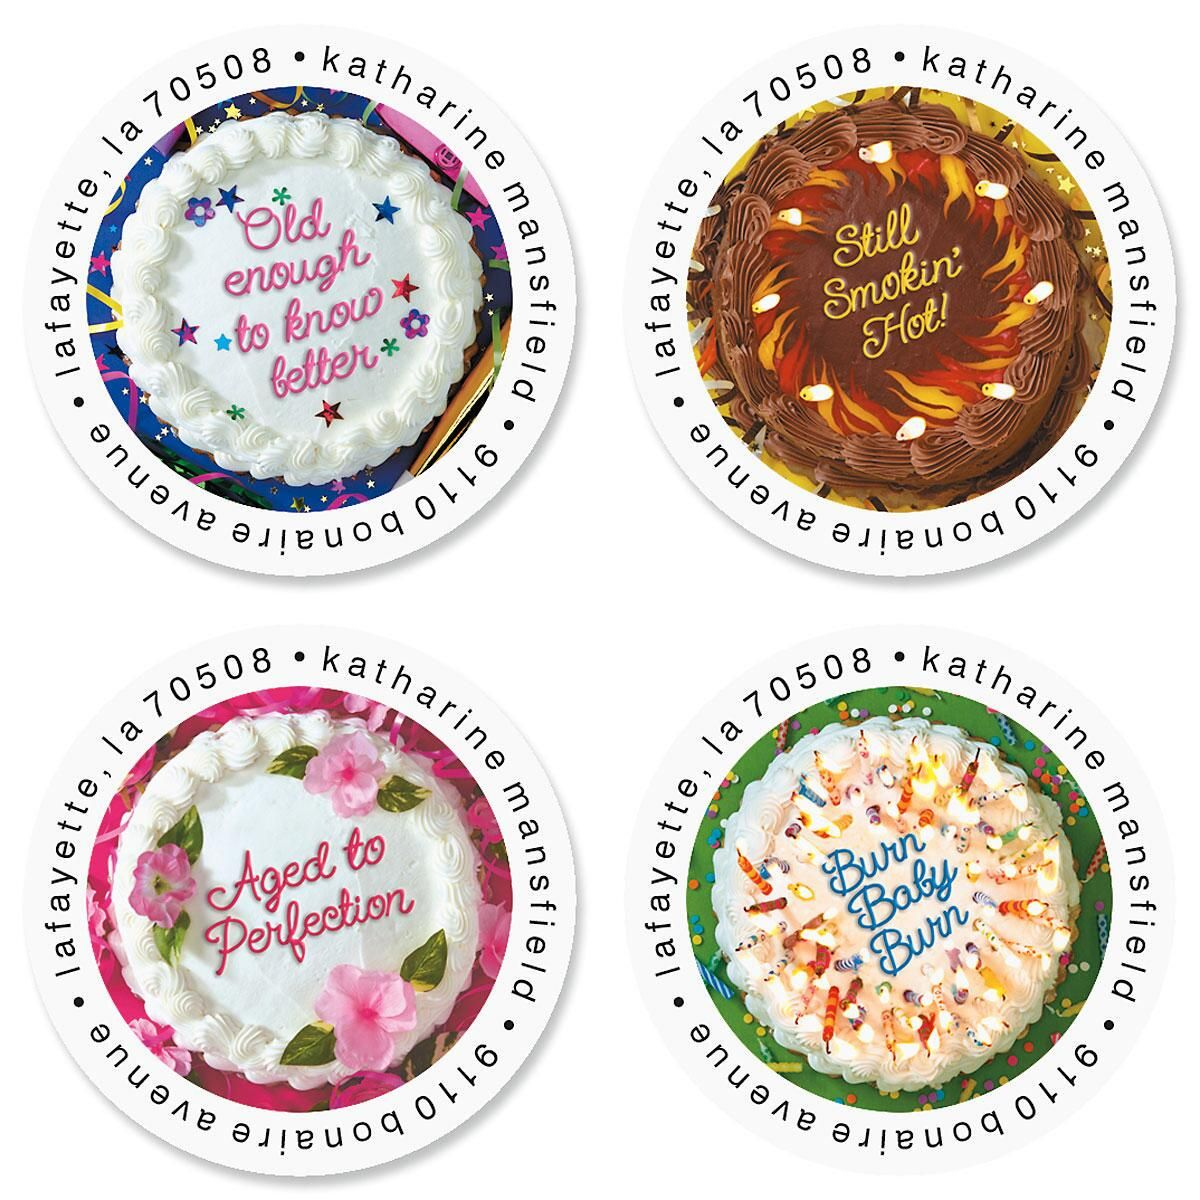 Cake Quips Round Return Address Labels Colorful Images